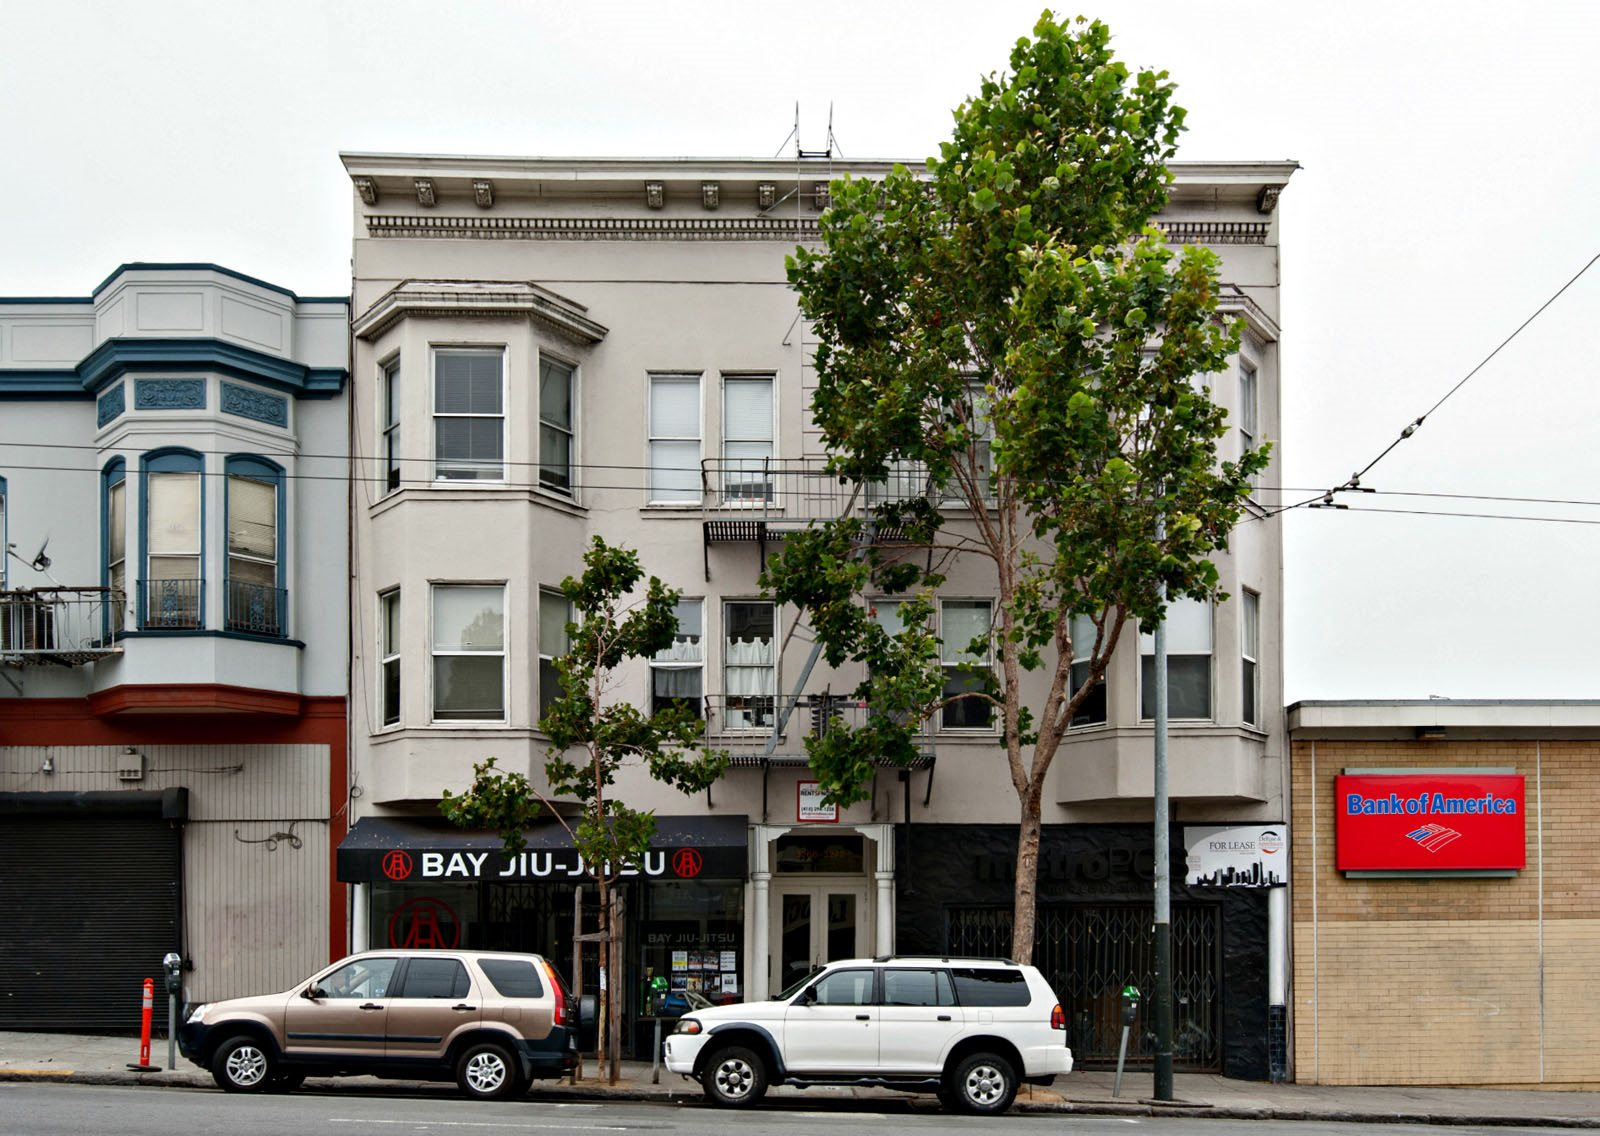 San Francisco homepagegallery 1